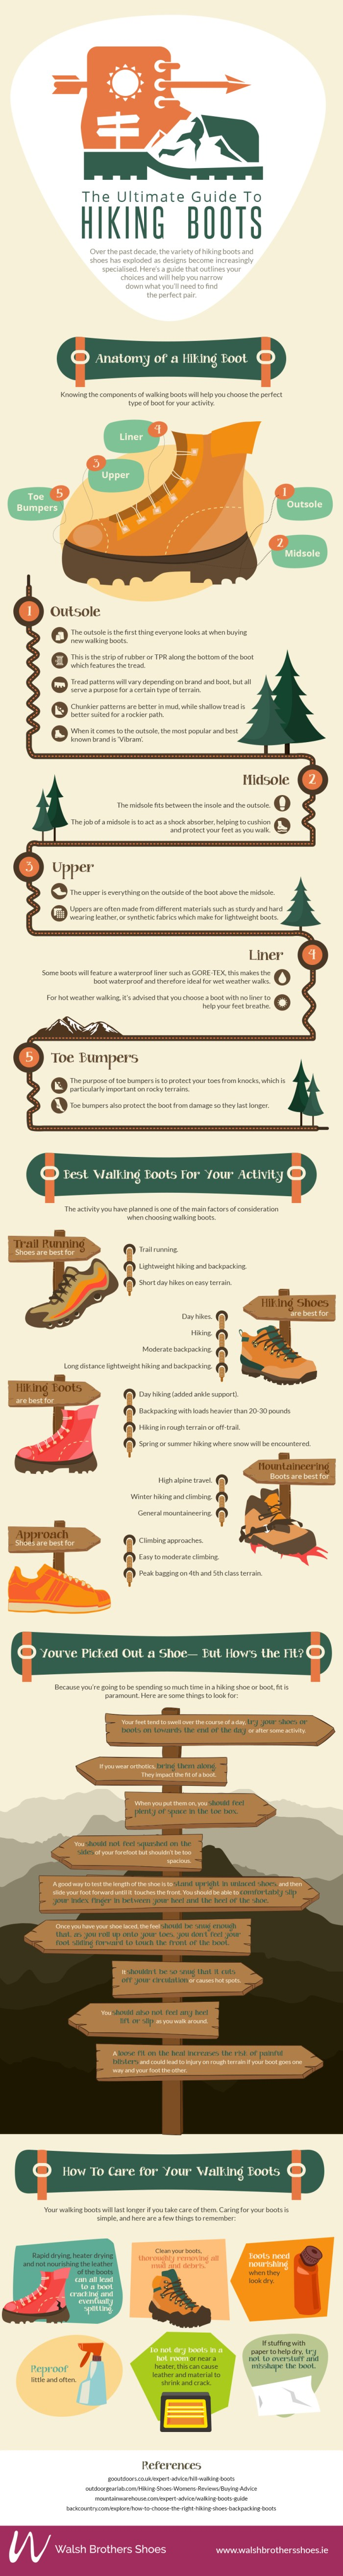 hiking boot guide